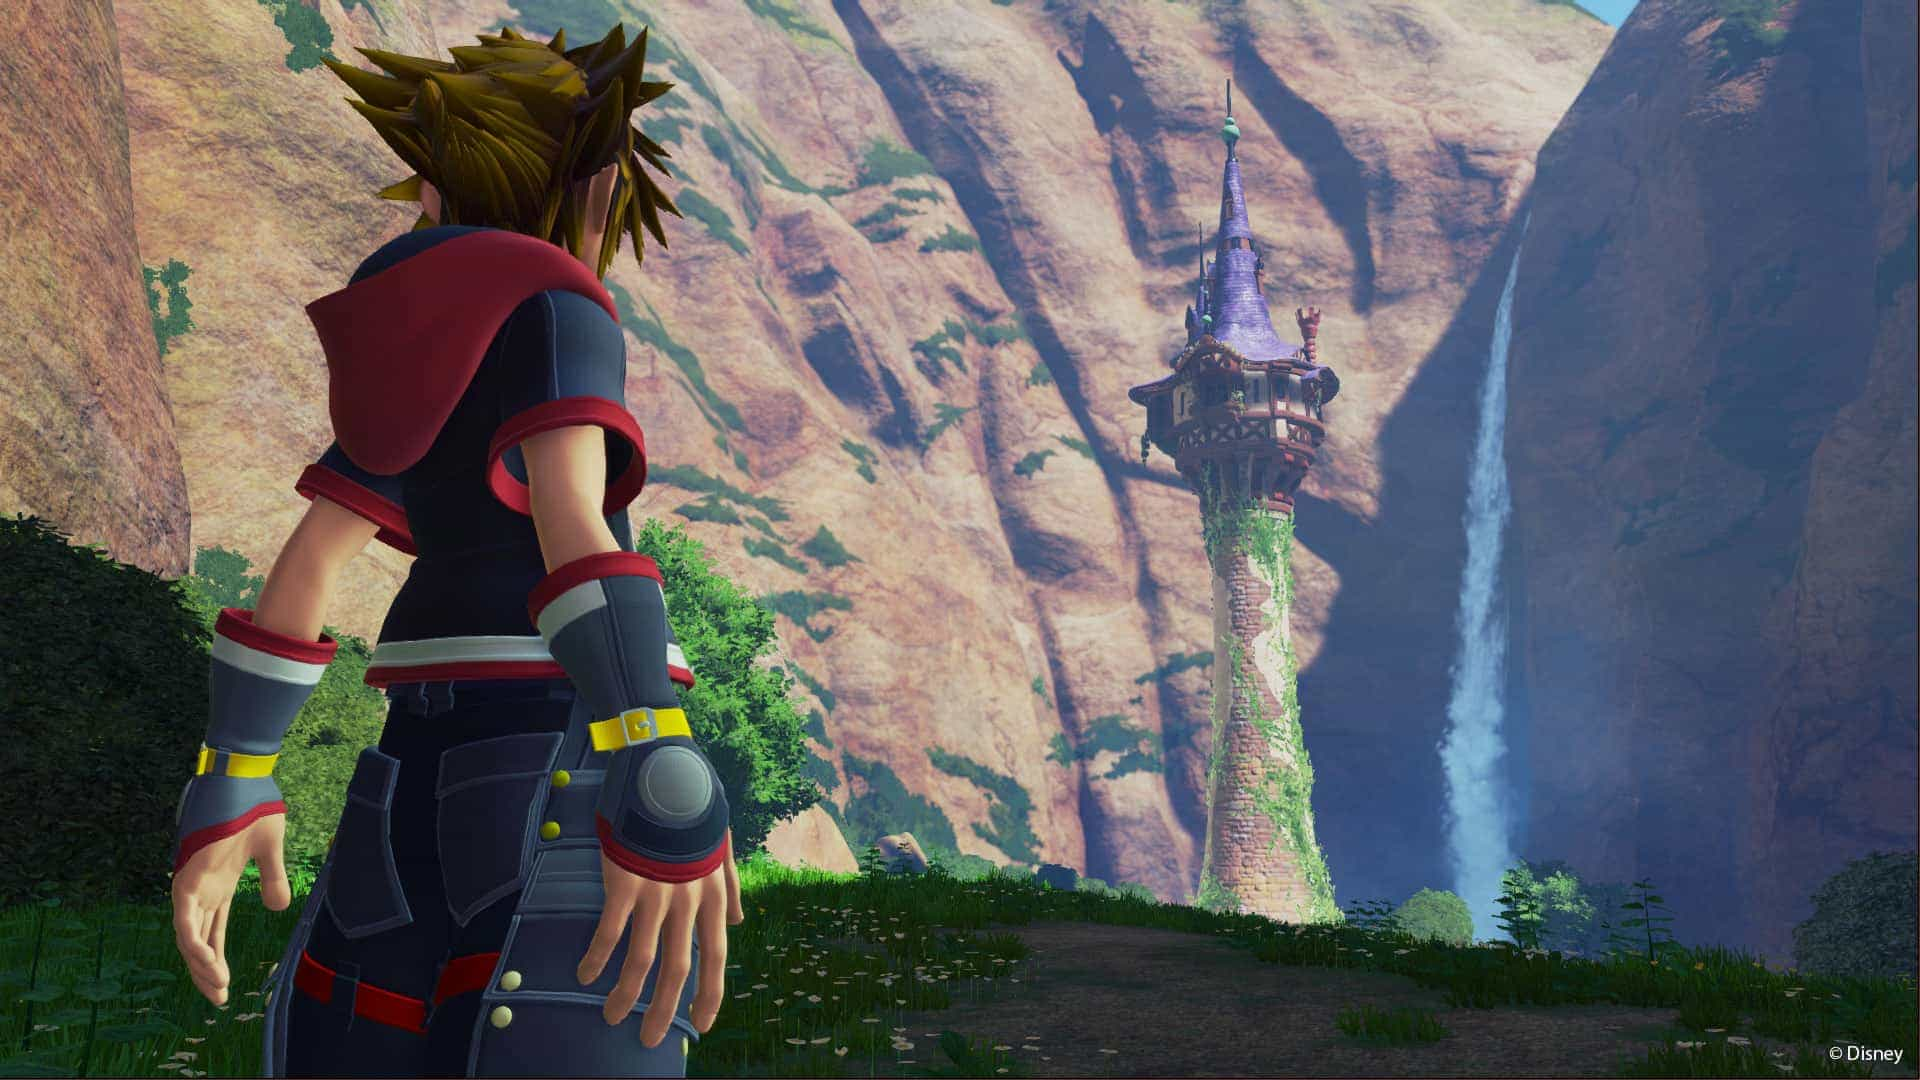 'Kingdom Hearts 3' Update: Mickey Mouse mini-game, multiple endings teased